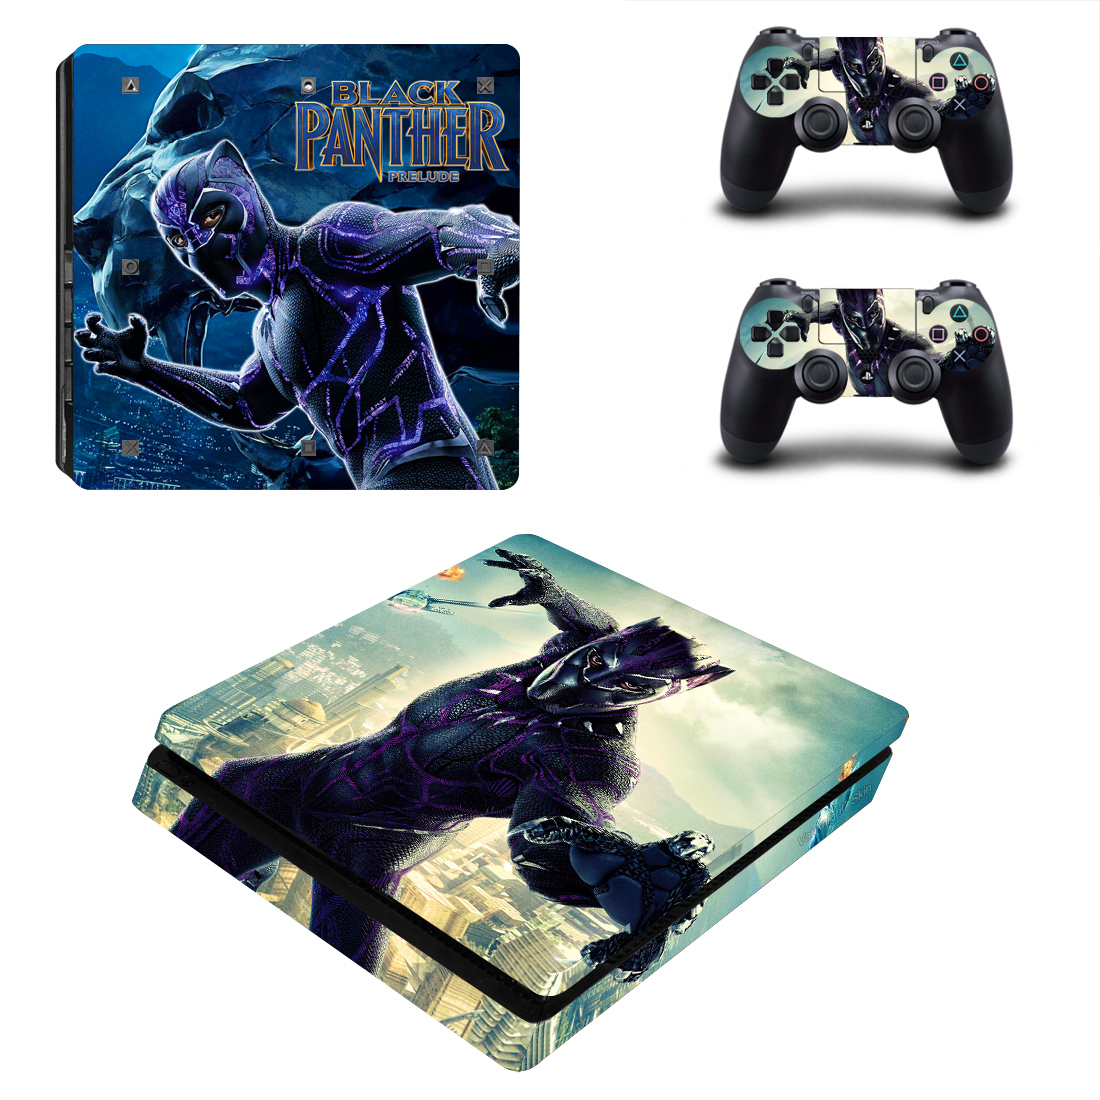 Regular Ps4 Console Controllers Skin Spider Man Marvel Comic Cosplay Vinyl Decal Video Game Accessories Video Games & Consoles